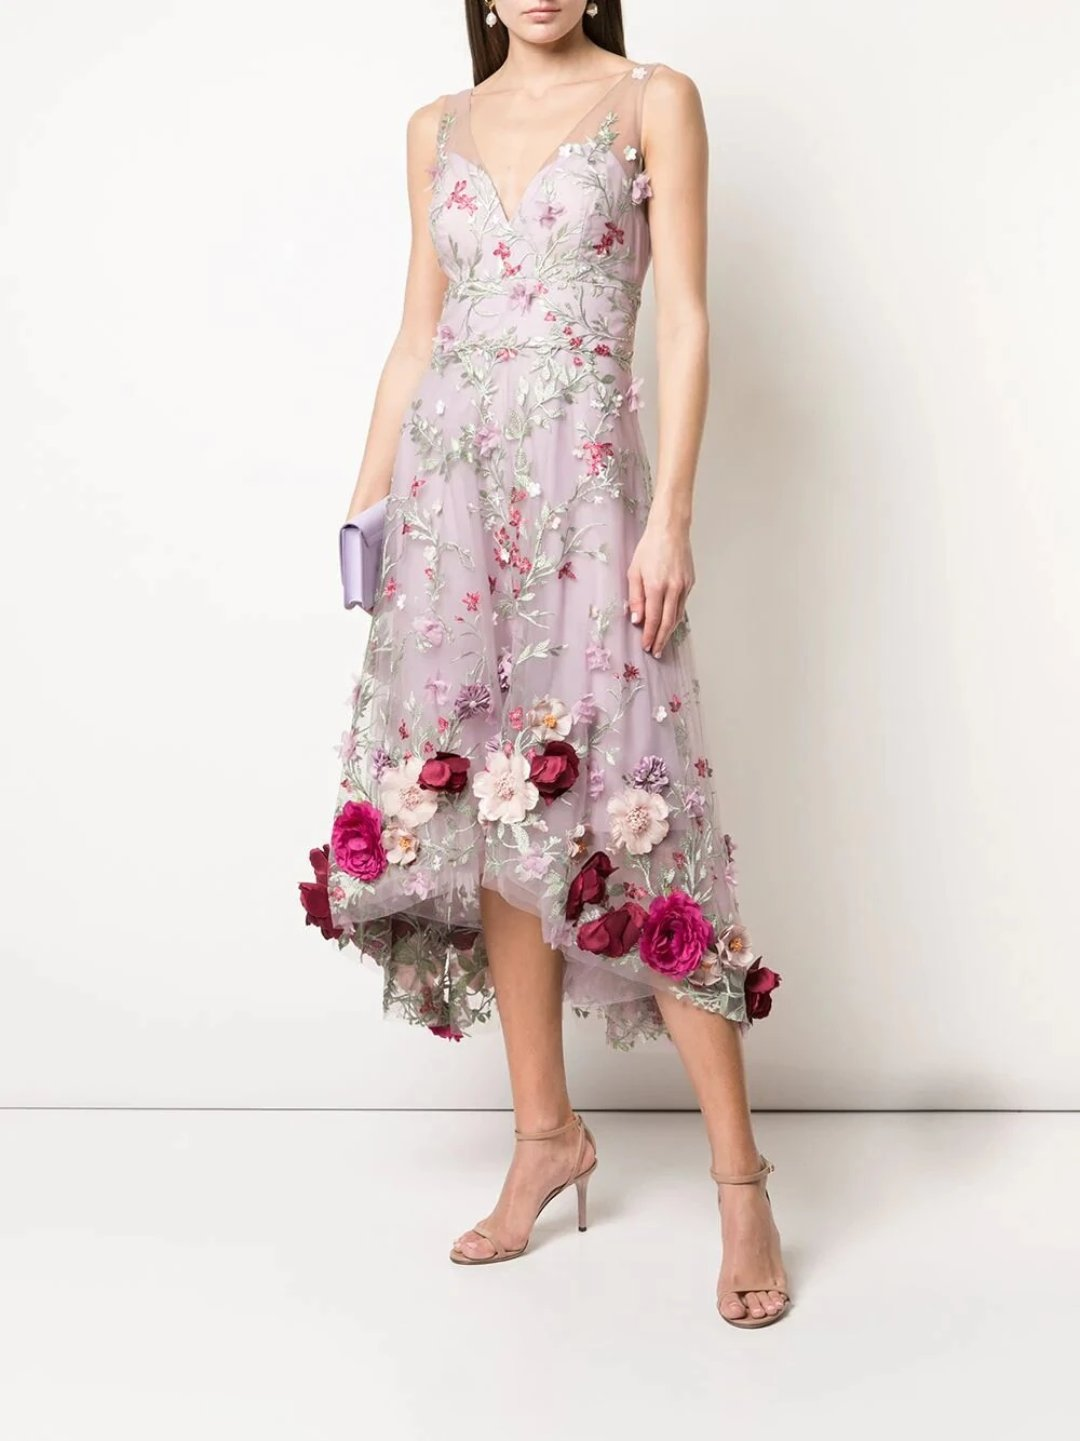 3D Floral Embroidered Hi Low Cocktail Dress